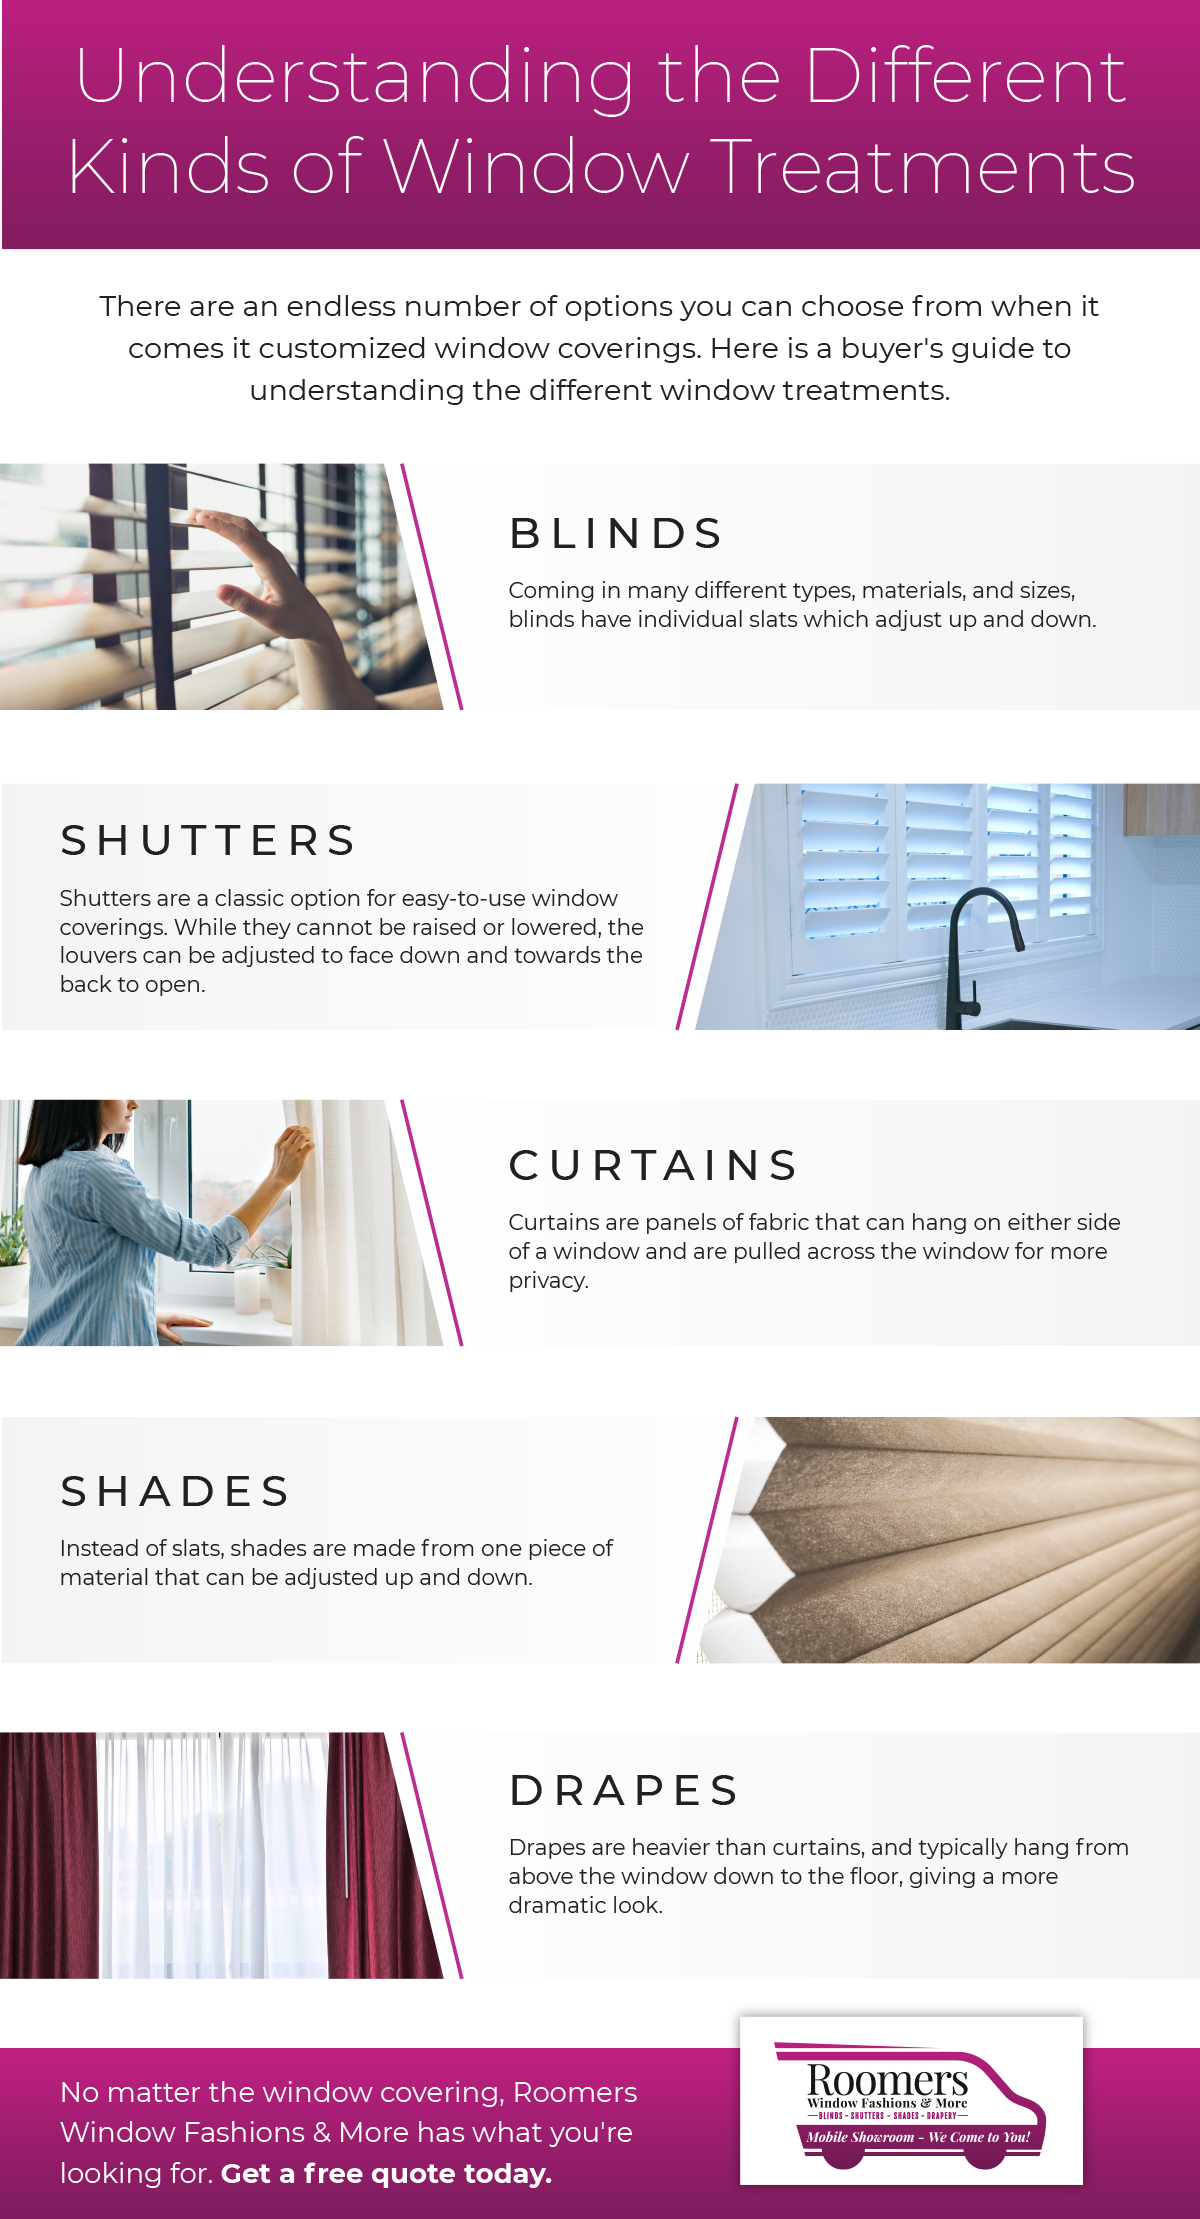 Infographic about window coverings